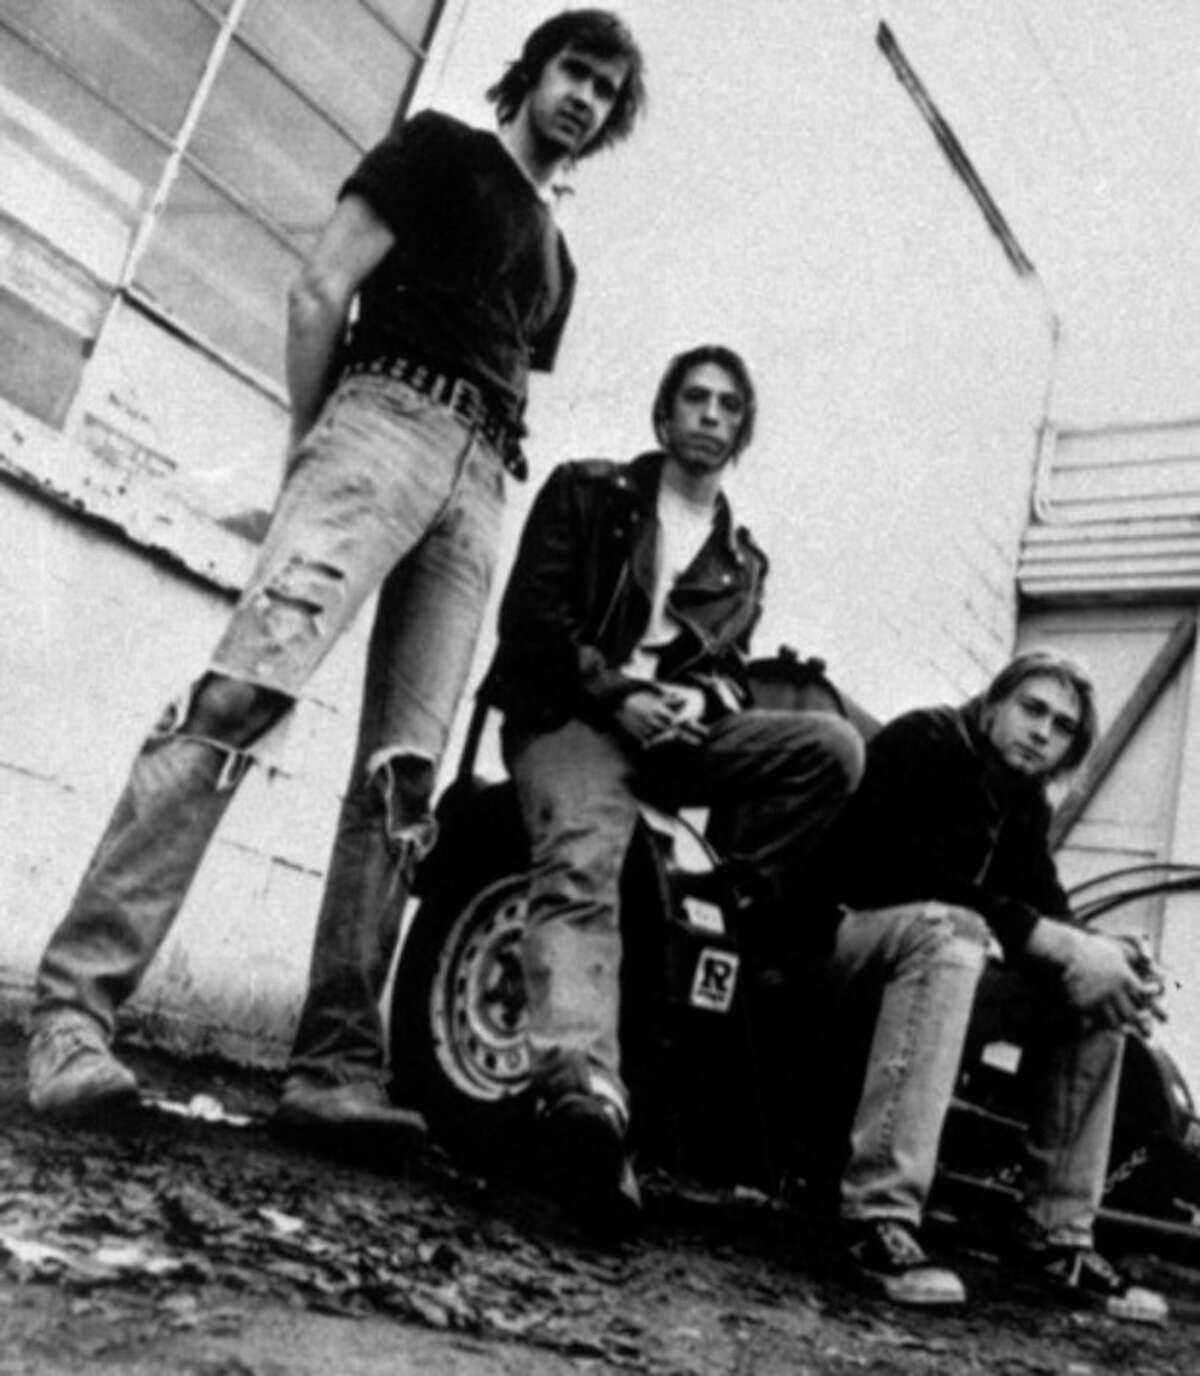 FILE - Members of the band Nirvana shown in a 1991 file photo, from left, Krist Novoselic, David Grohl, and Kurt Cobain. Nirvana, Linda Ronstadt, Peter Gabriel, Hall and Oates, and The Replacements are among first-time nominees to the Rock and Roll Hall of Fame. The hall of fame announced its annual list of nominees Wednesday morning, Oct. 16, 2013, and half the field of 16 were first-time nominees. (AP Photo/Chris Cuffaro, File)